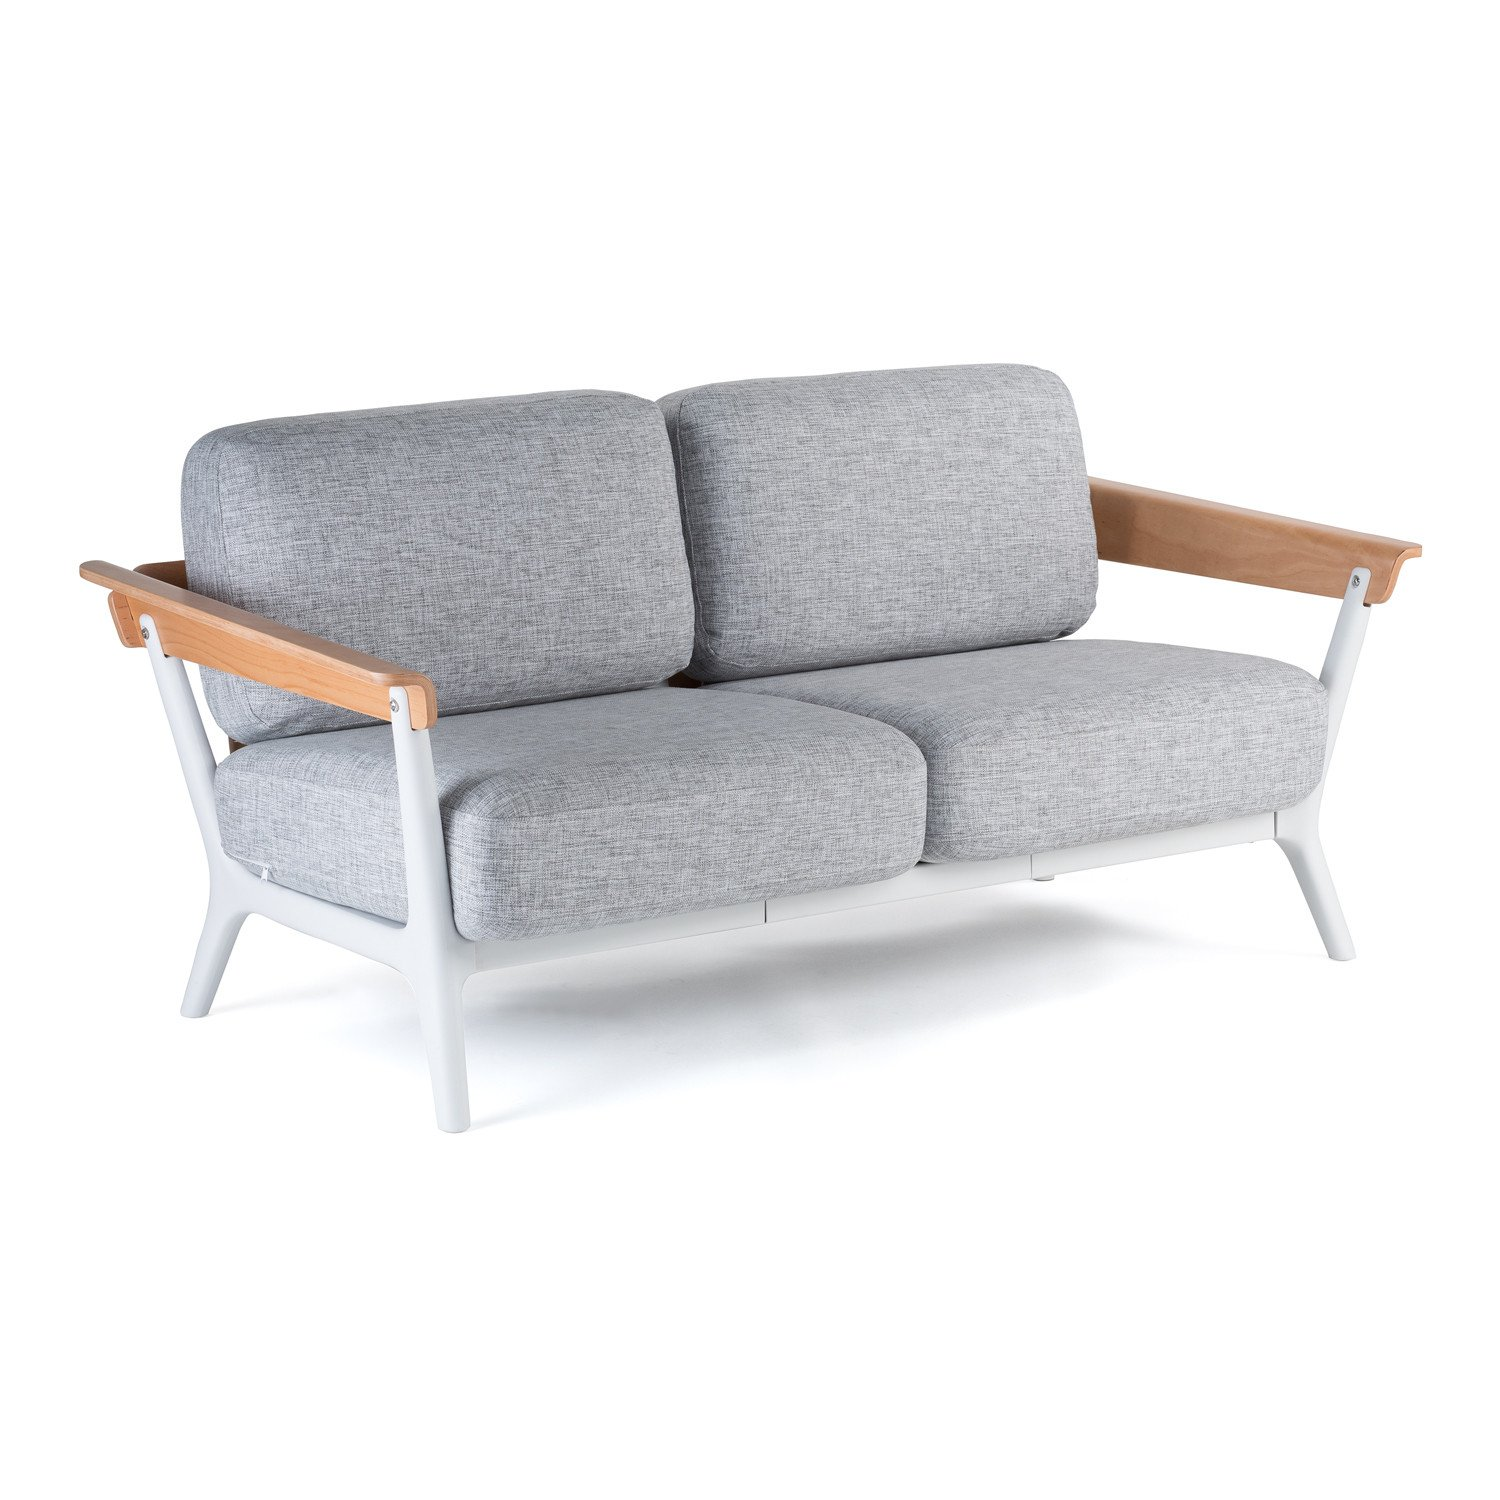 Two Seater Sofa Nêro, gallery image 1